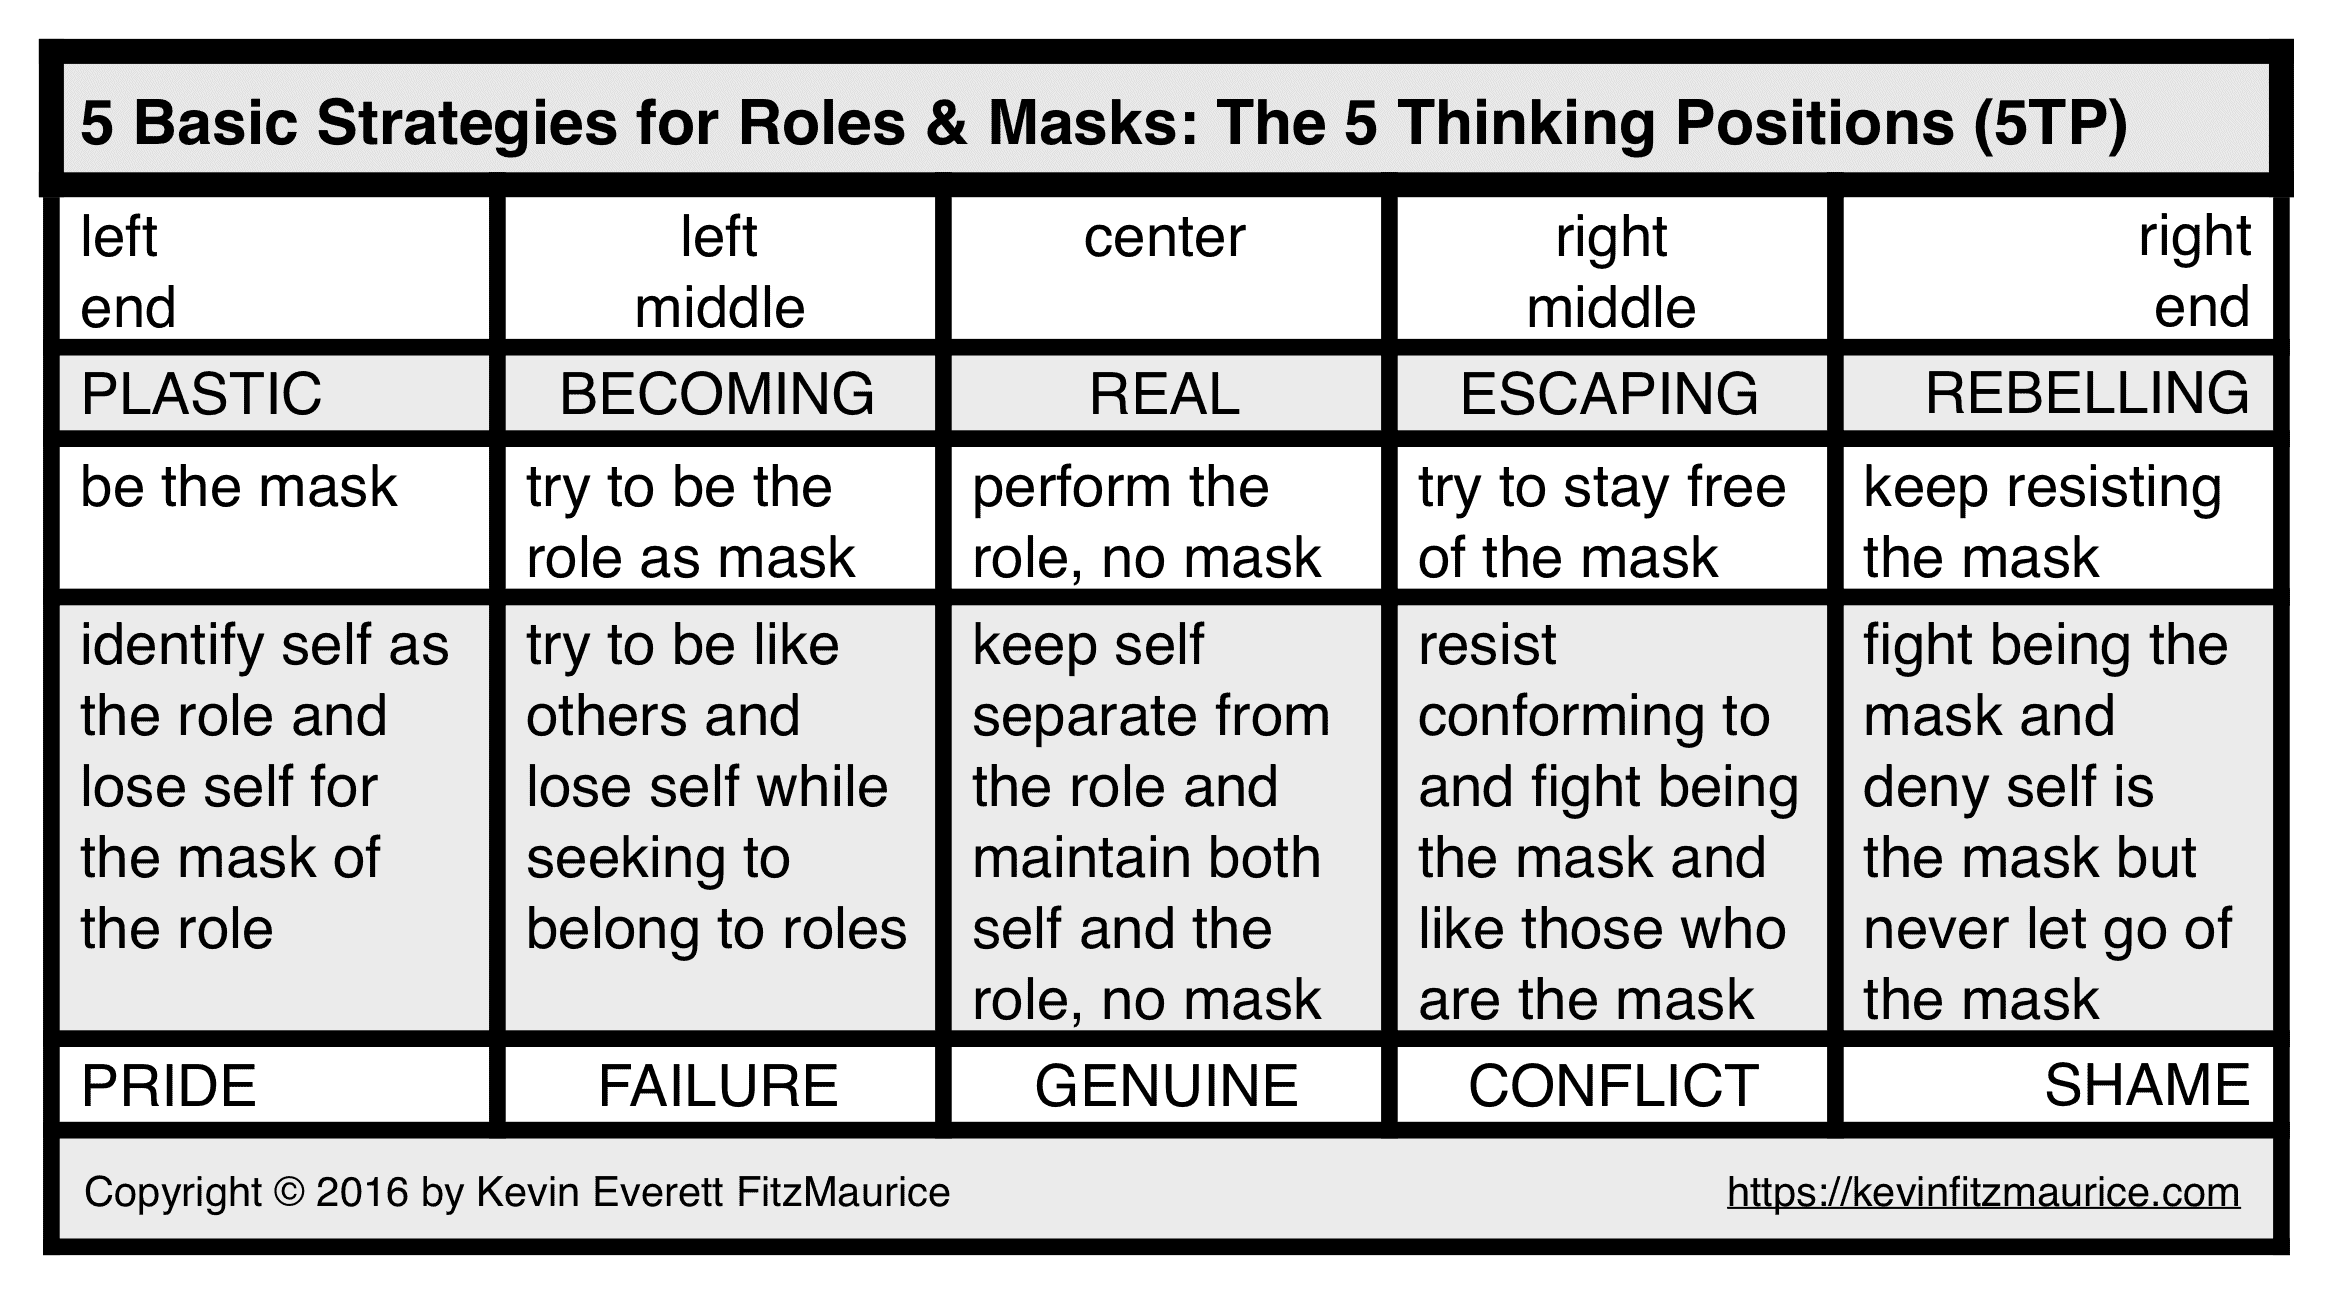 Roles and Masks Strategies Table